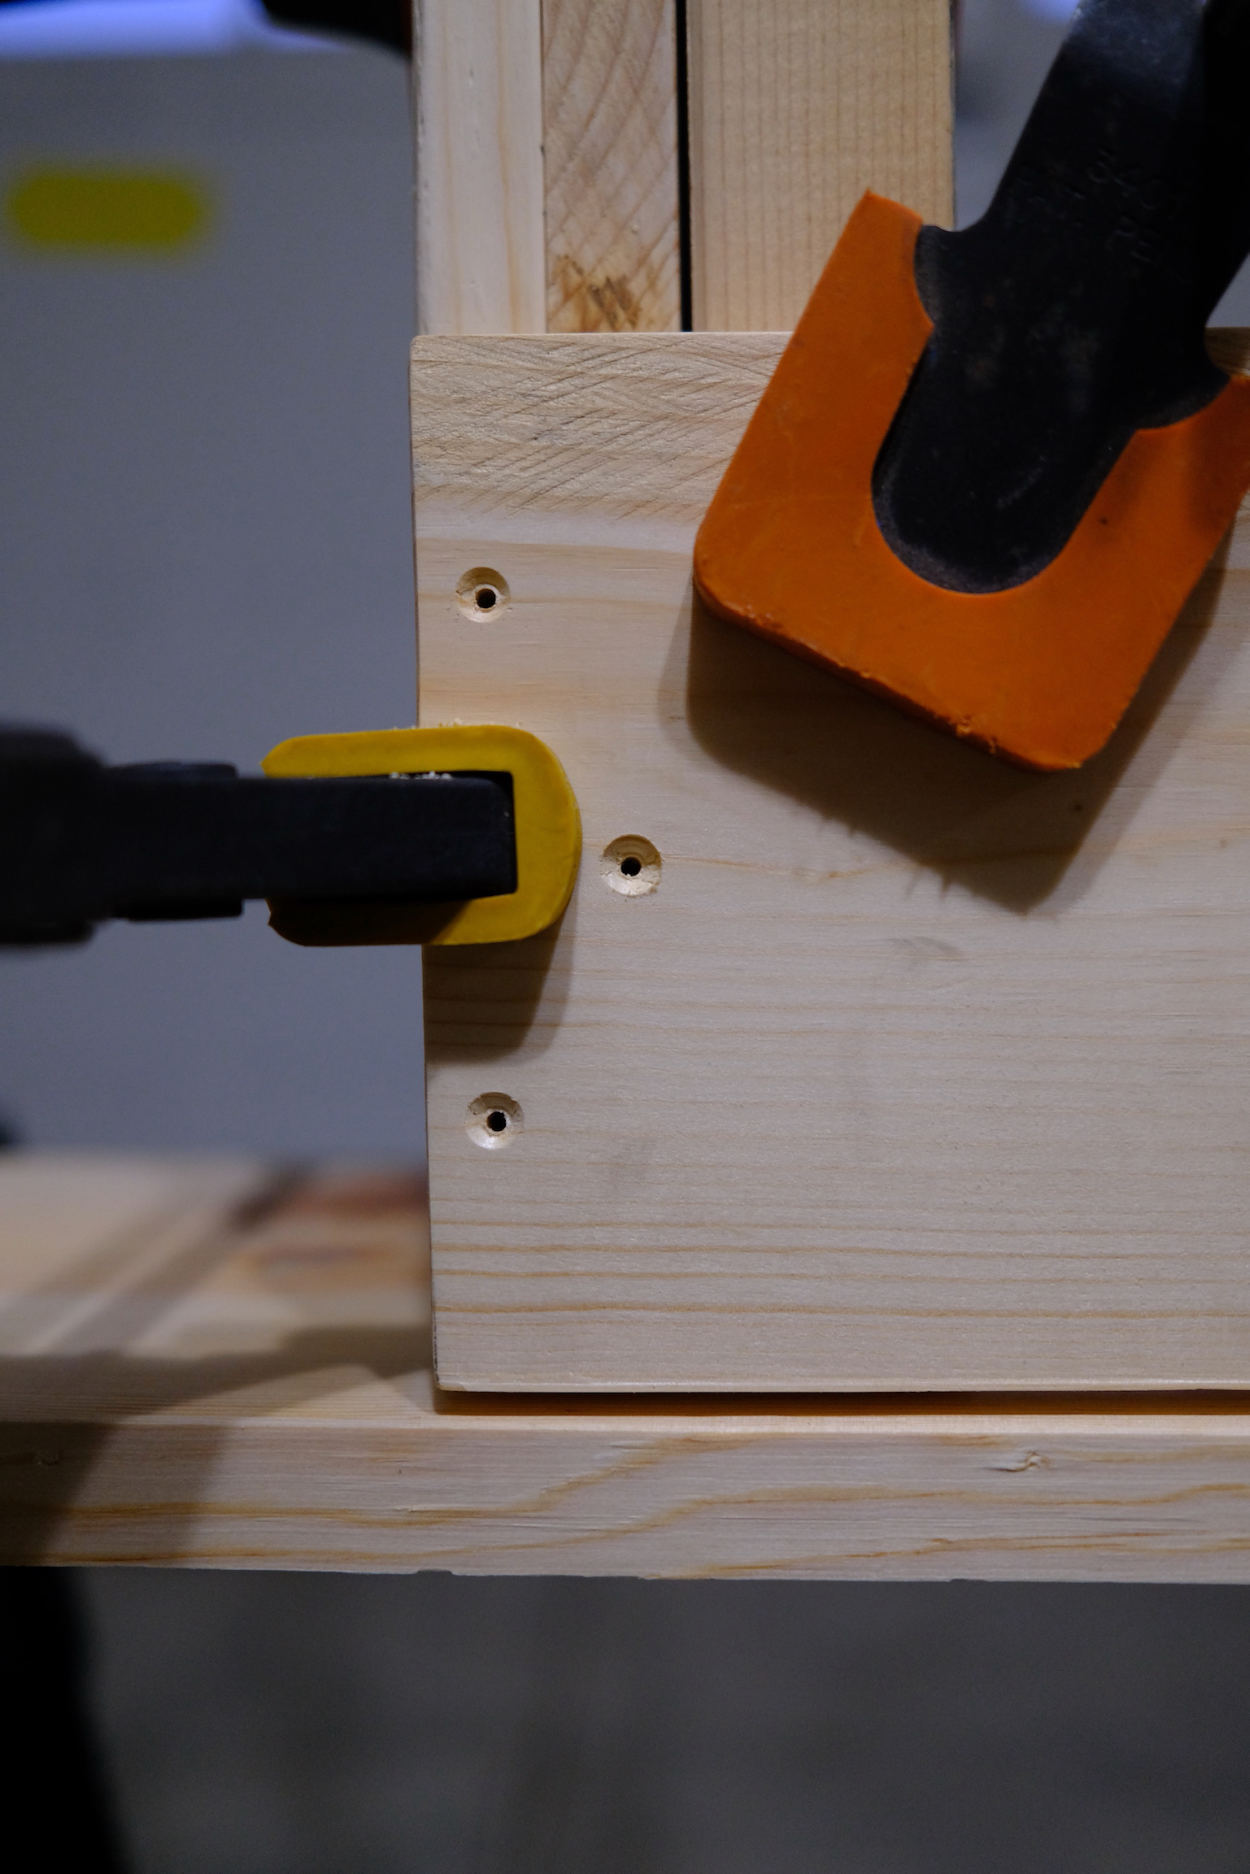 Pilot holes in the cross bar of a Rietveld crate stool